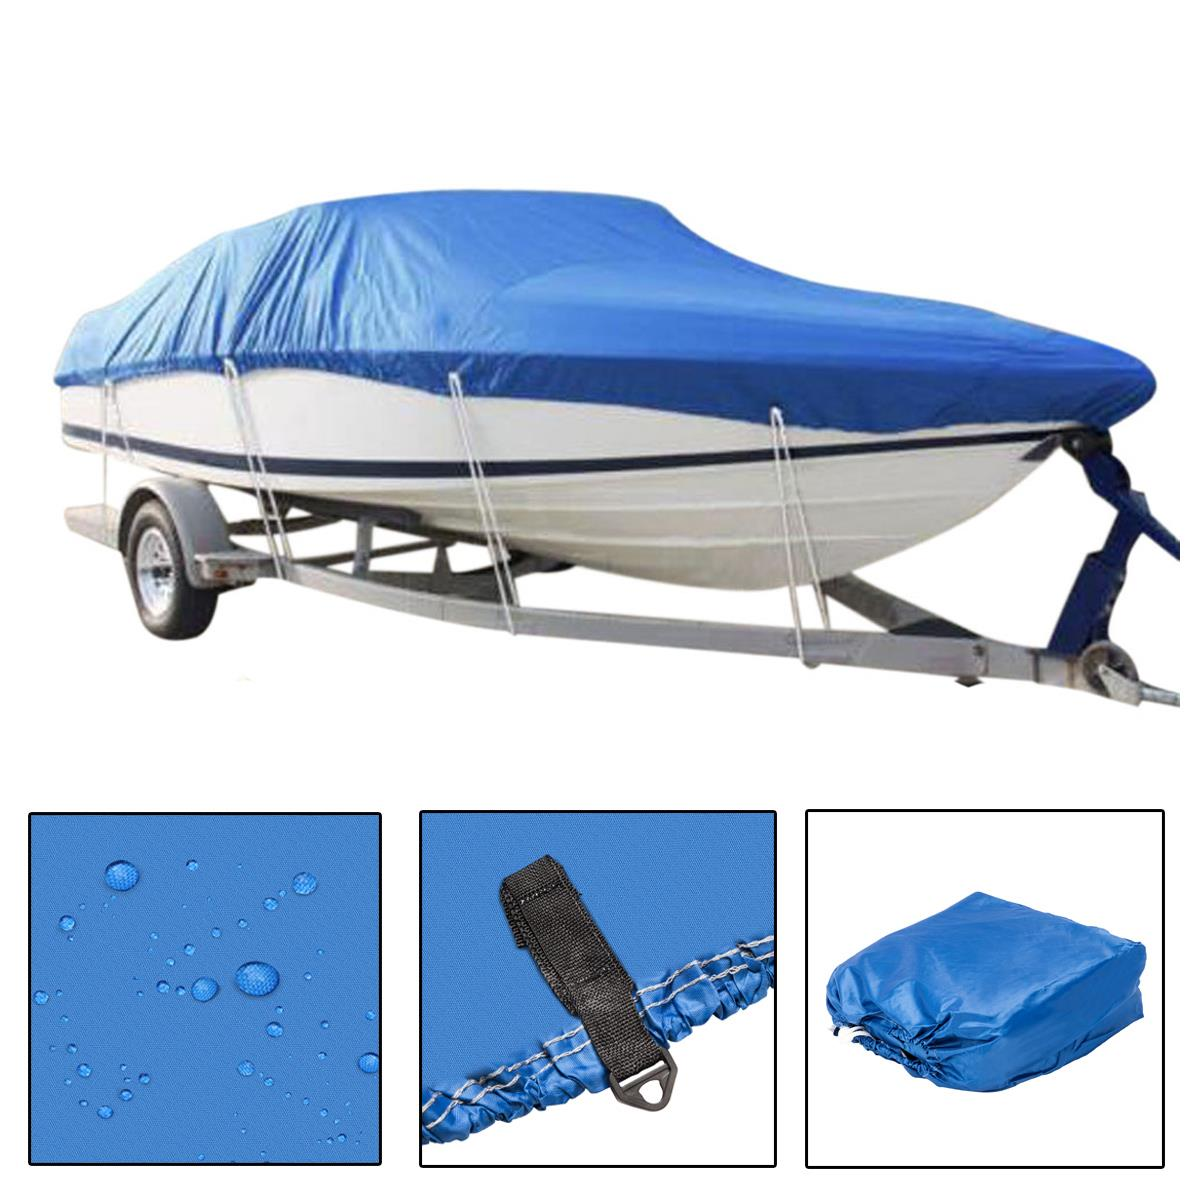 Blue Color 210D Oxford Fabric Waterproof Boat Cover 17 Ft 18 Ft 19 Ft.